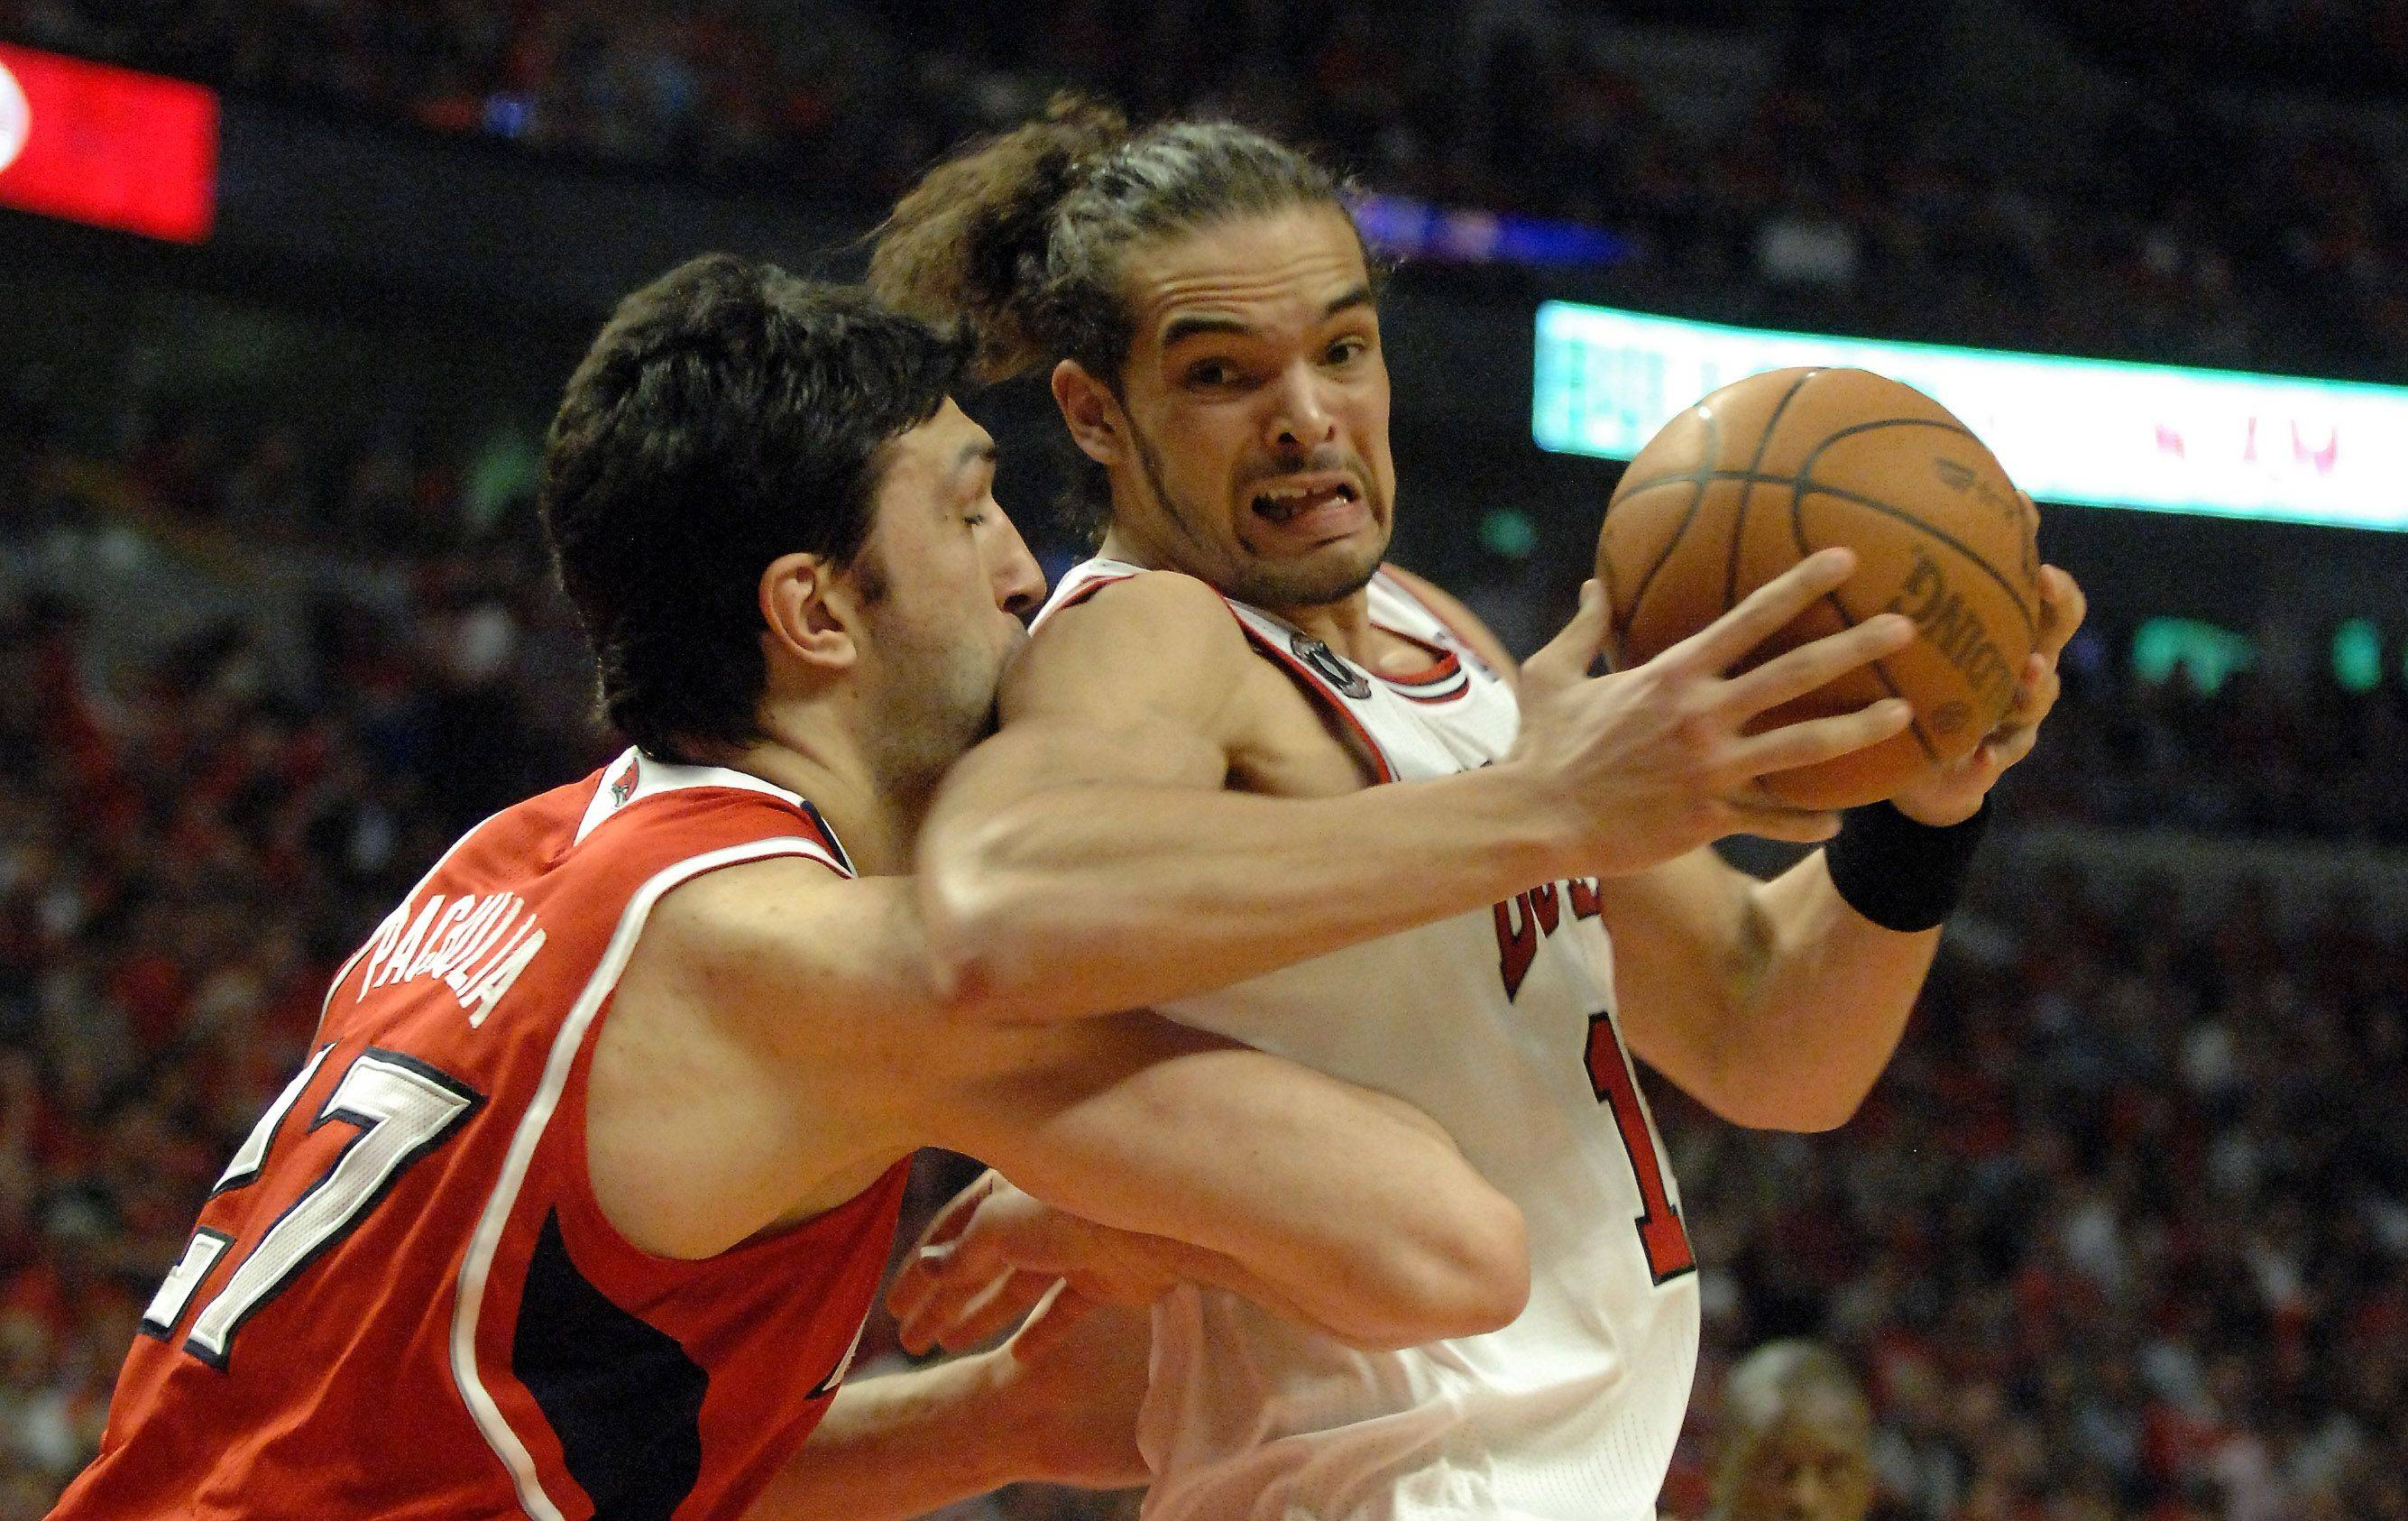 Chicago Bulls center Joakim Noah tries to back in against Atlanta Hawks center Zaza Pachulia at the United Center.